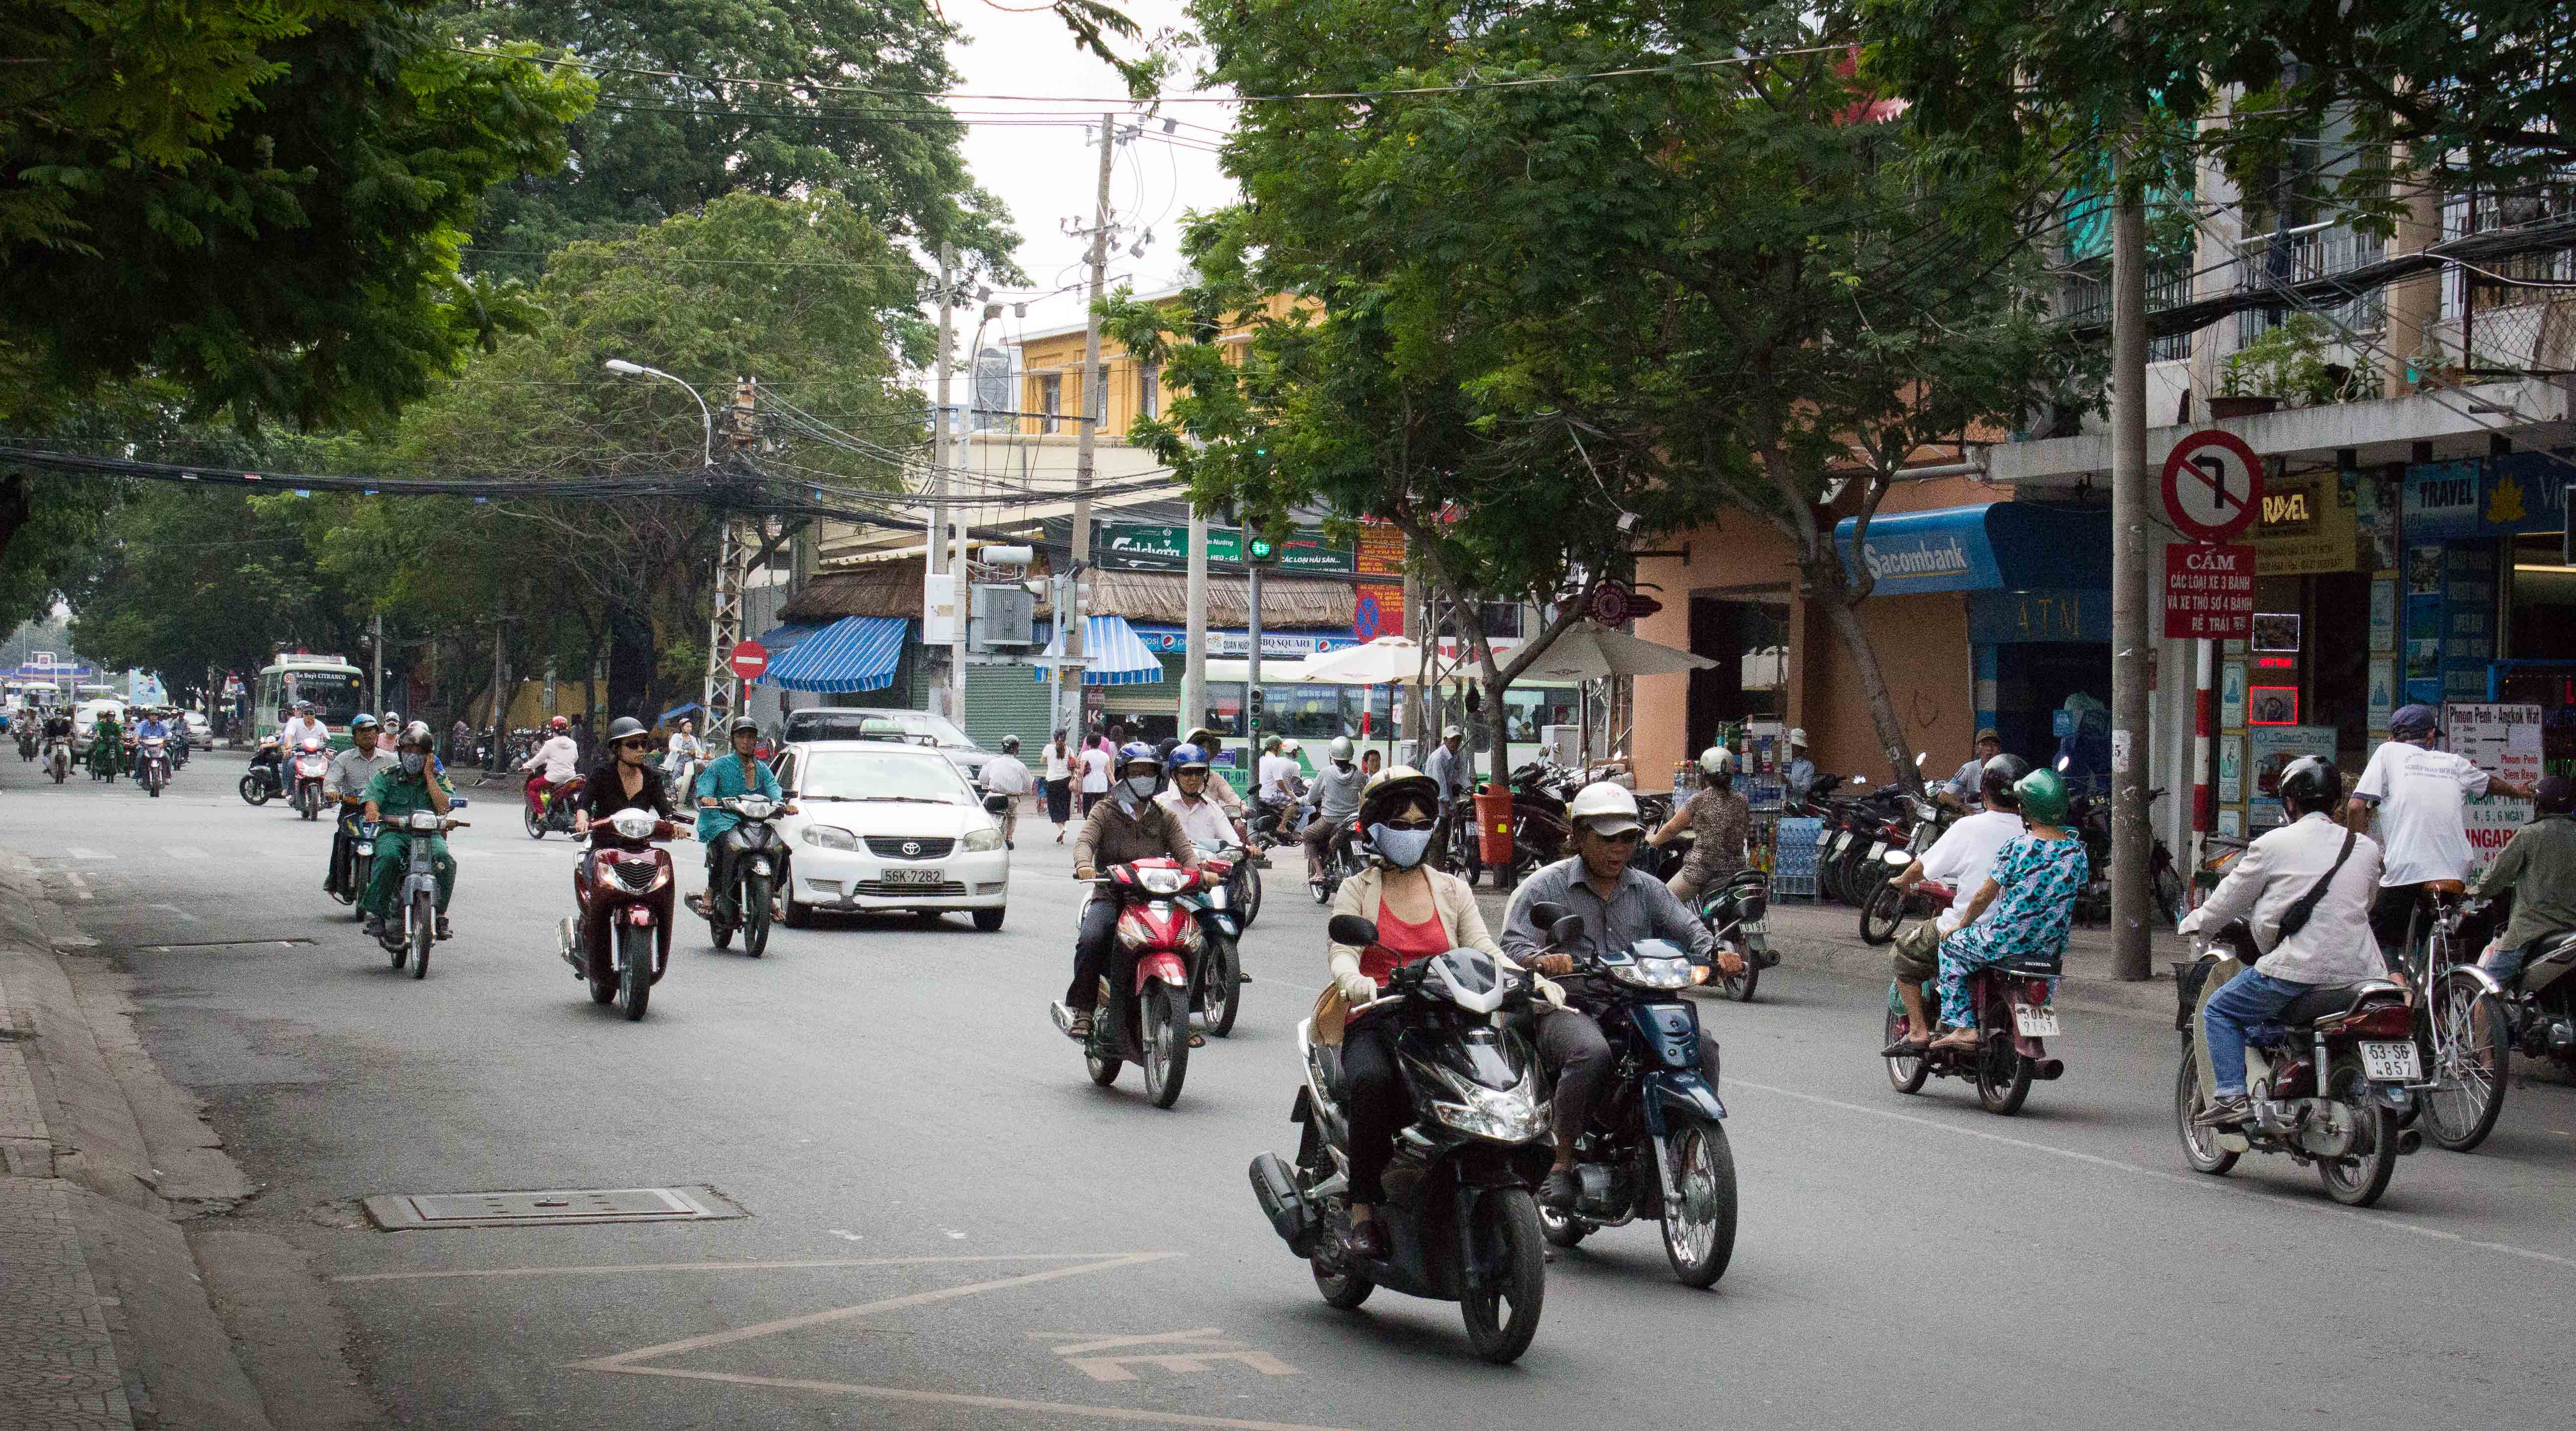 Photos from Saigon Vietnam 2012